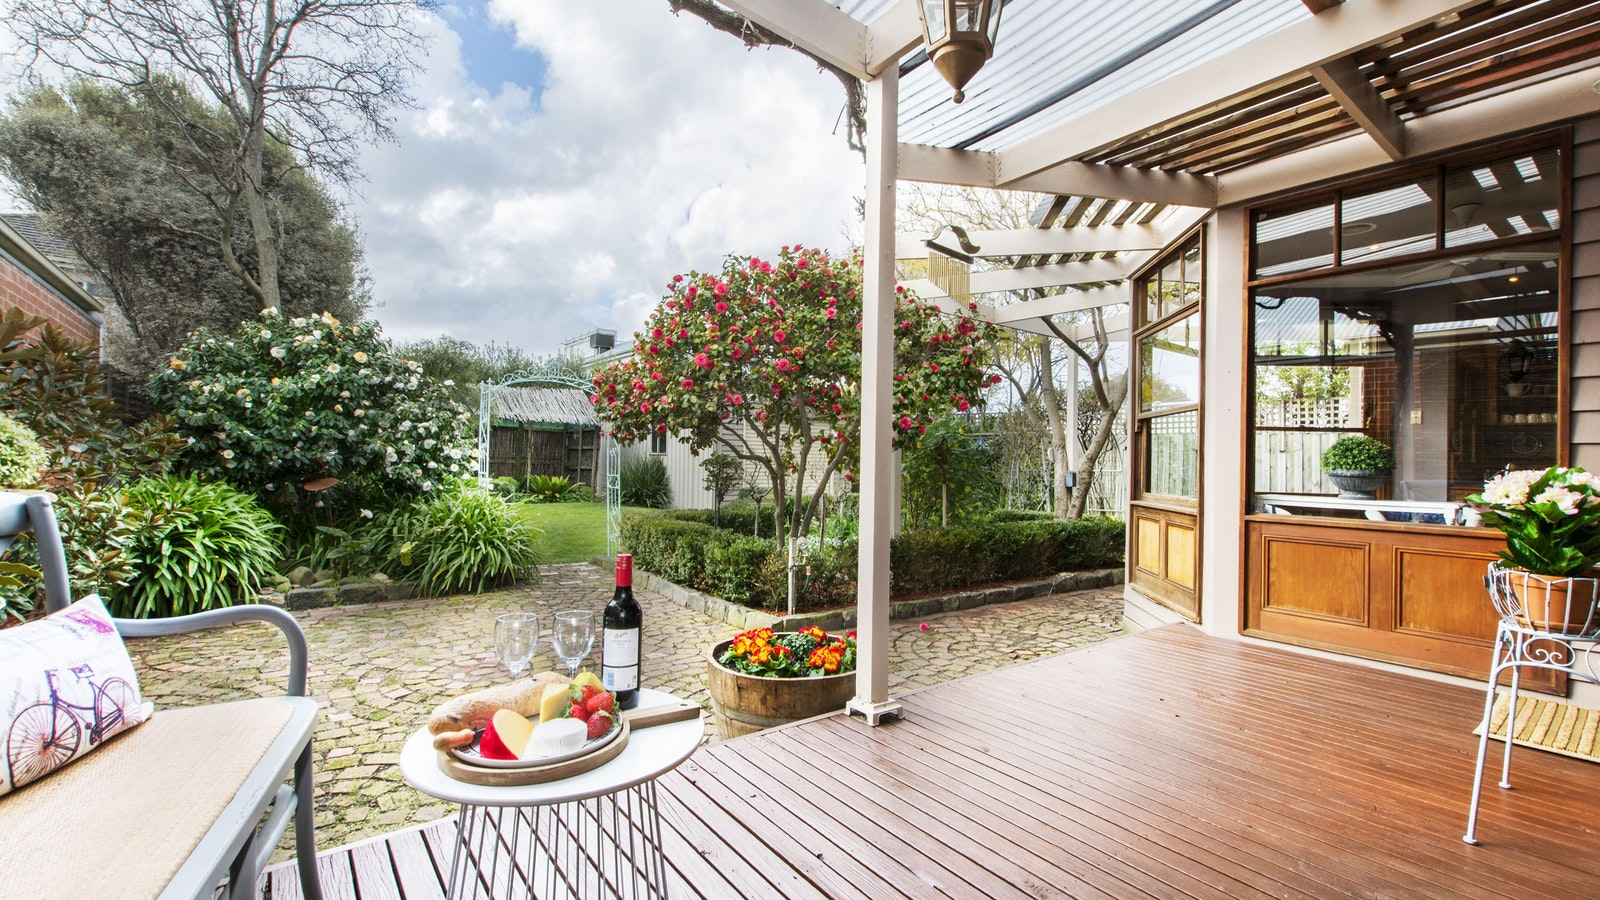 gorgeous north-facing rear deck and garden for alfresco relaxing